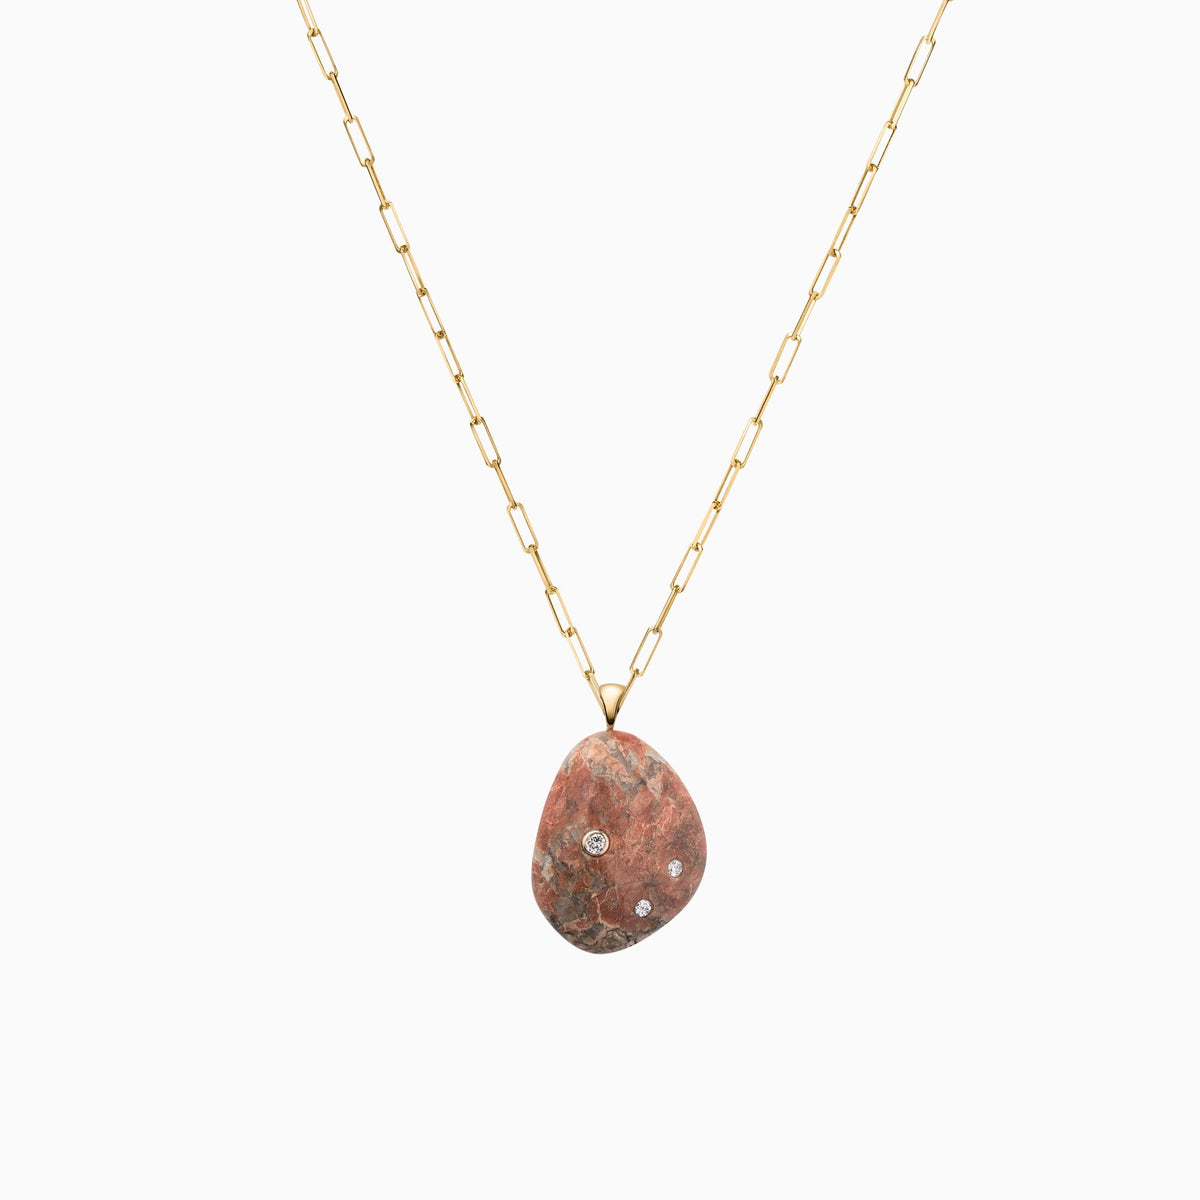 Nessa Designs Jewelry | Necklaces | Mountain Desert Pebble & Diamond